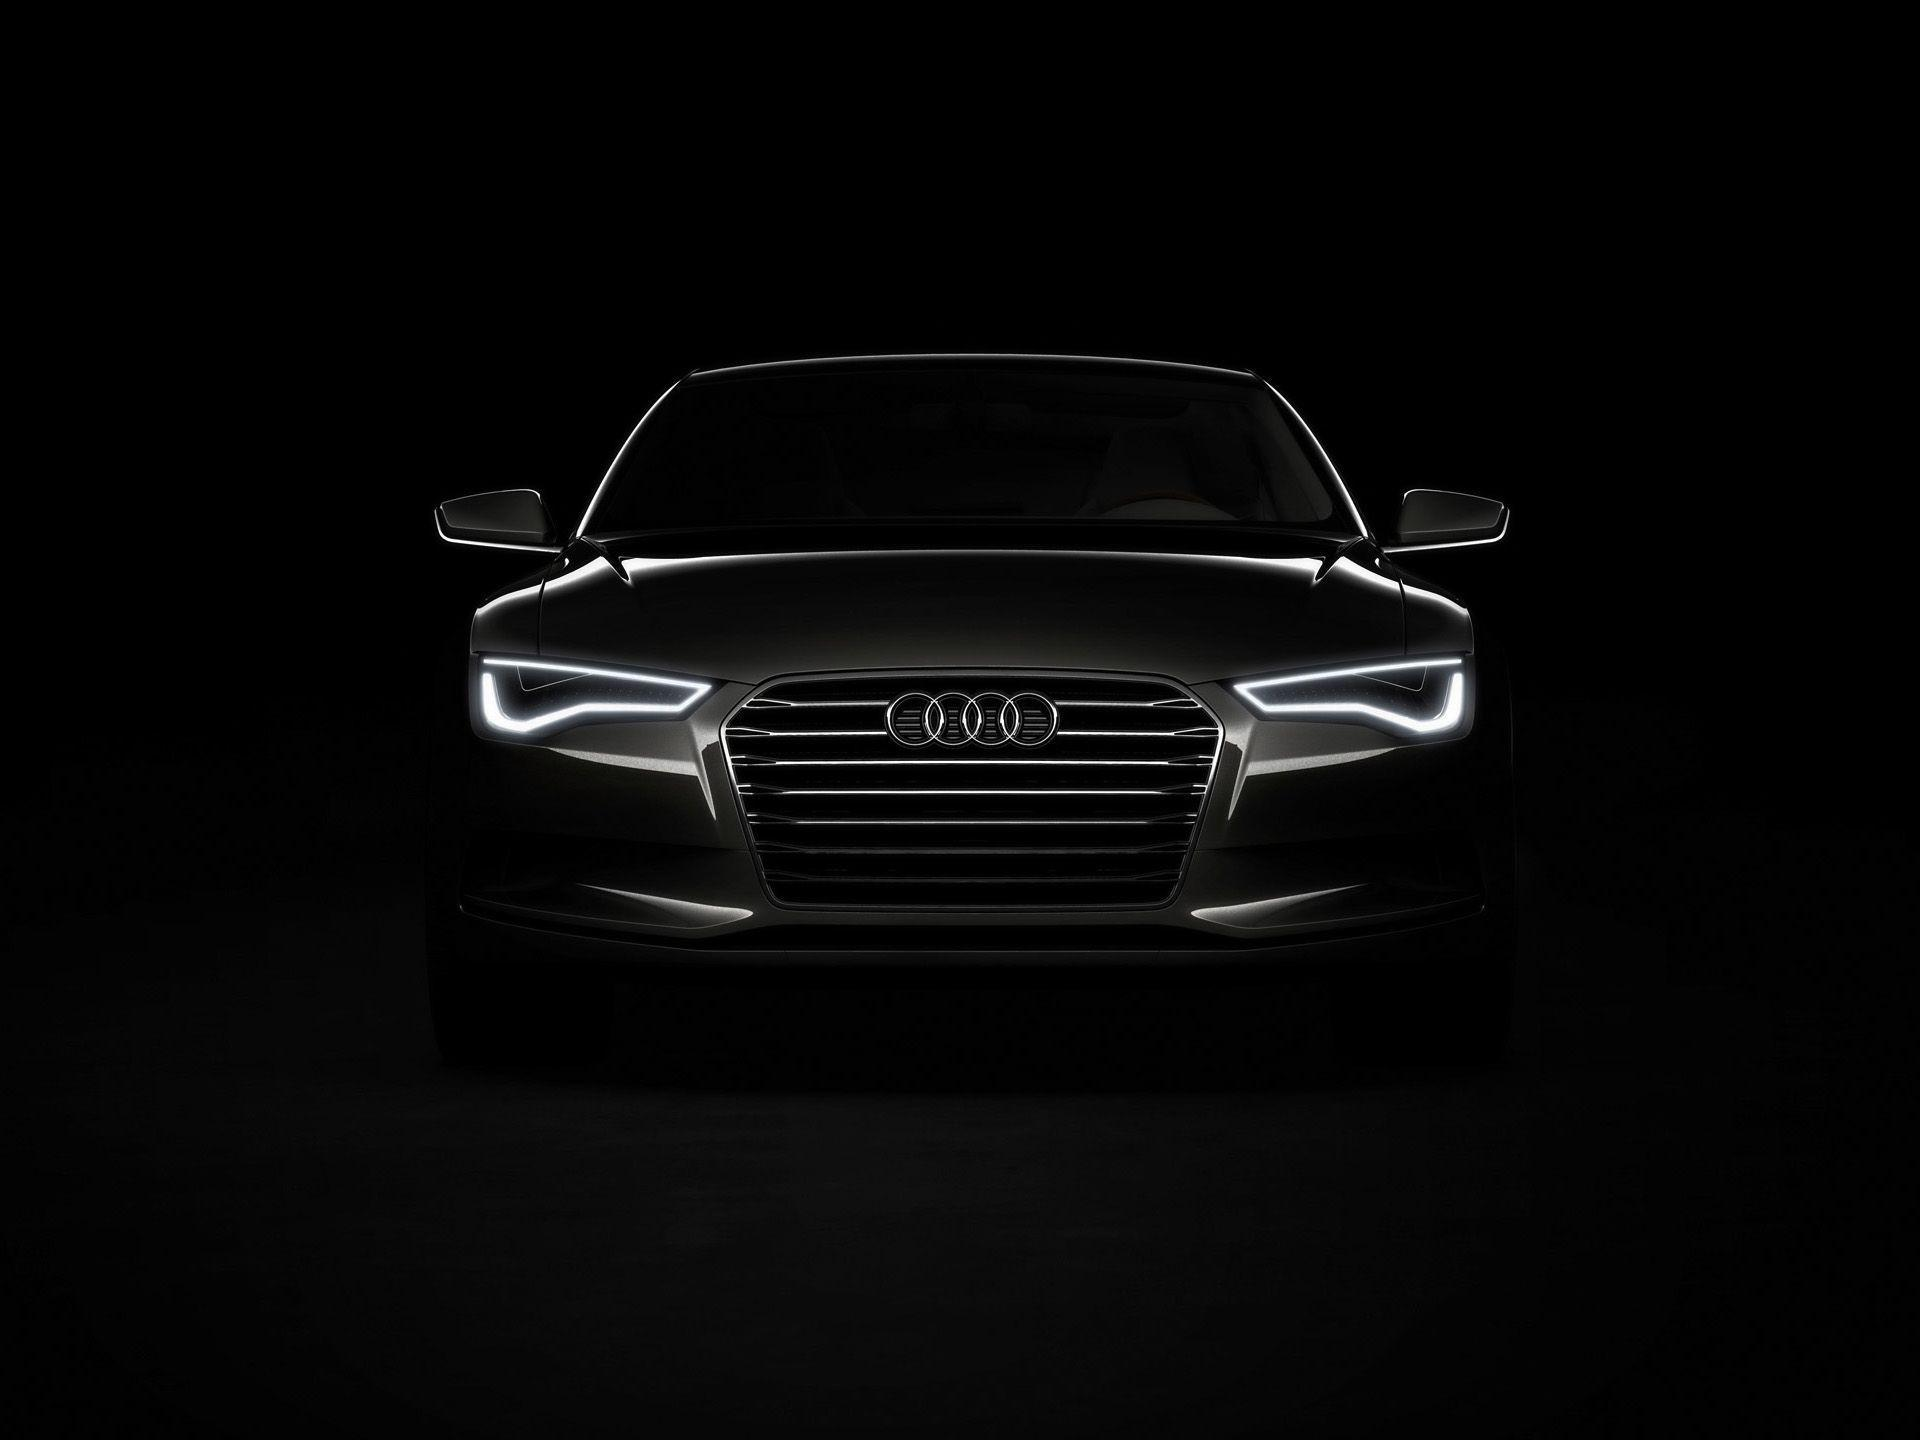 Audi A4 Wallpapers, Gallery of 41 Audi A4 Backgrounds, Wallpapers